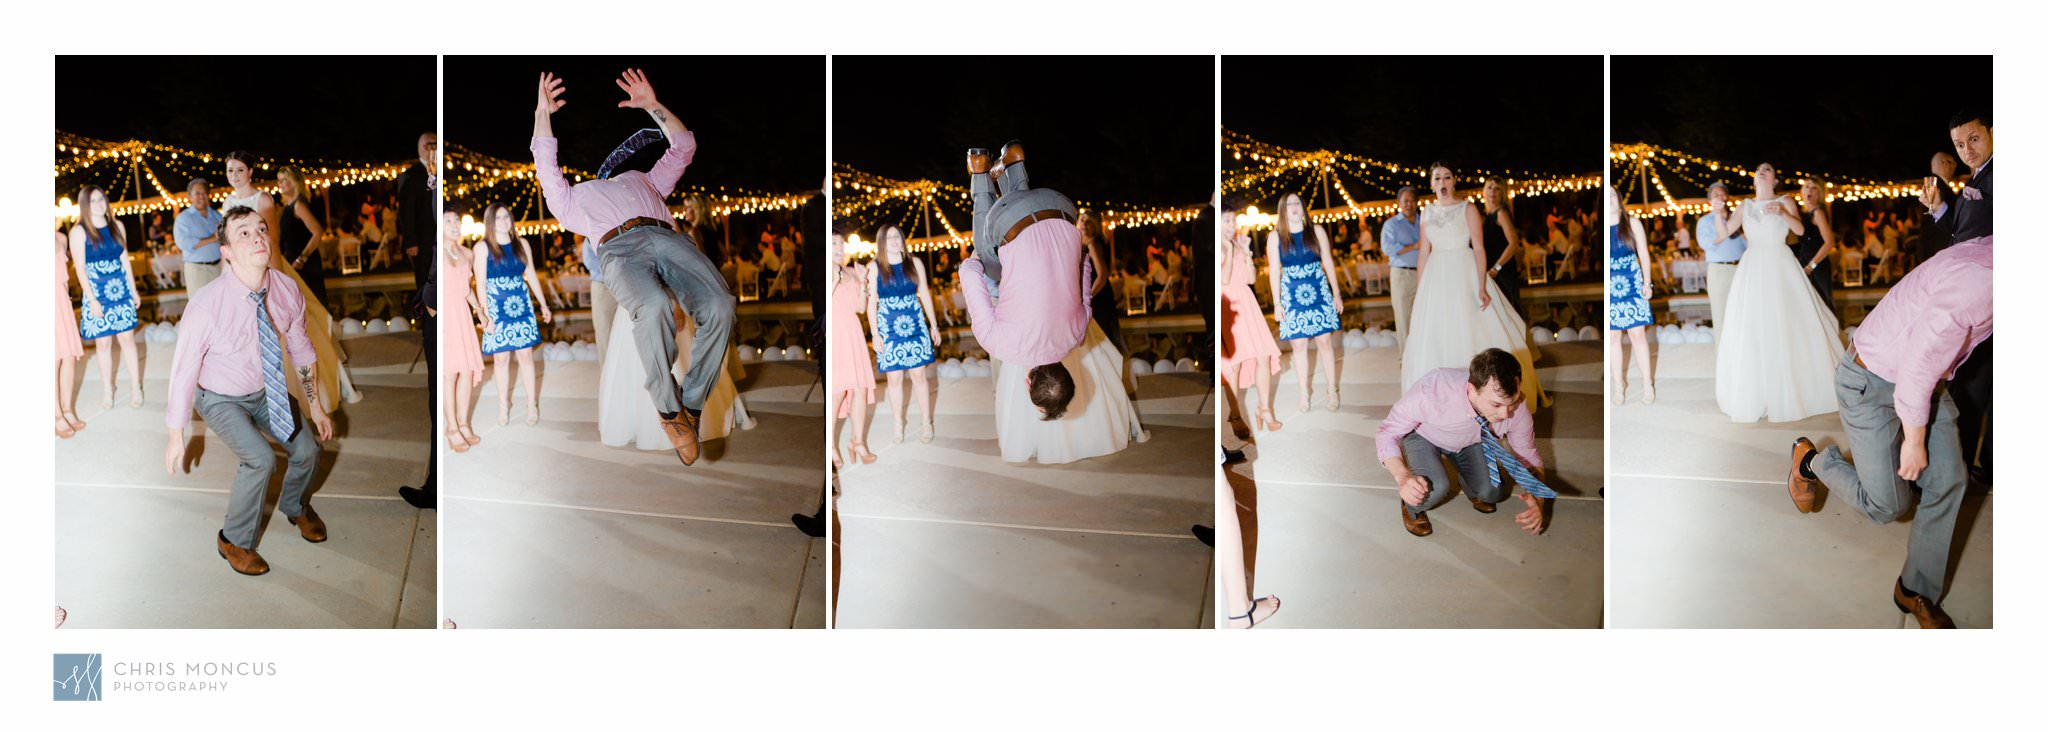 Back Flip at Las Vegas Wedding Reception